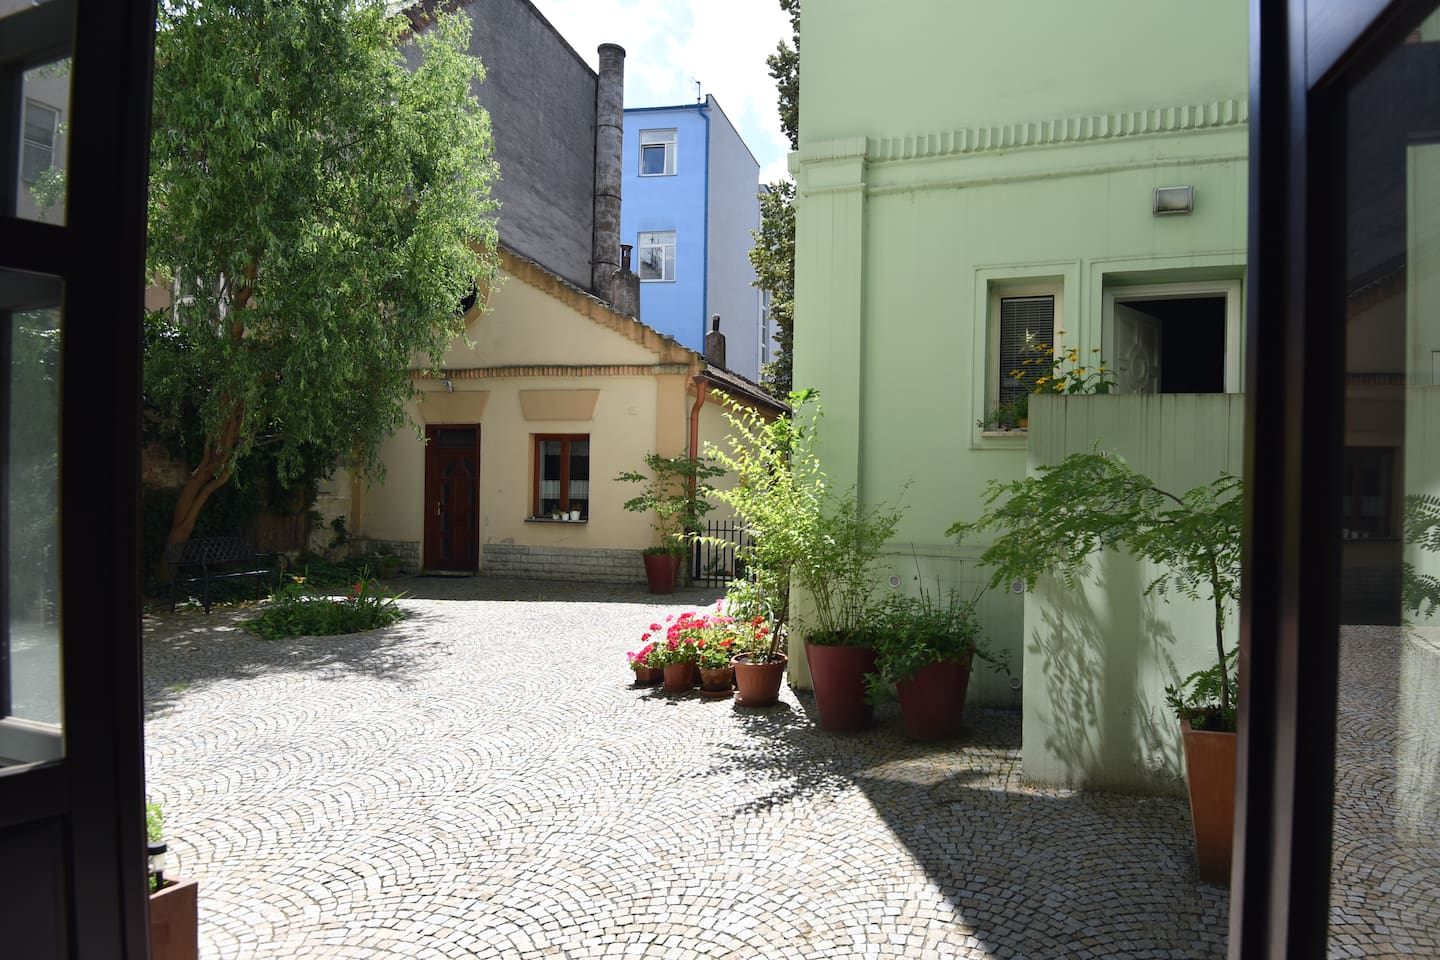 Historic House is situated in the cortyard with a garden.